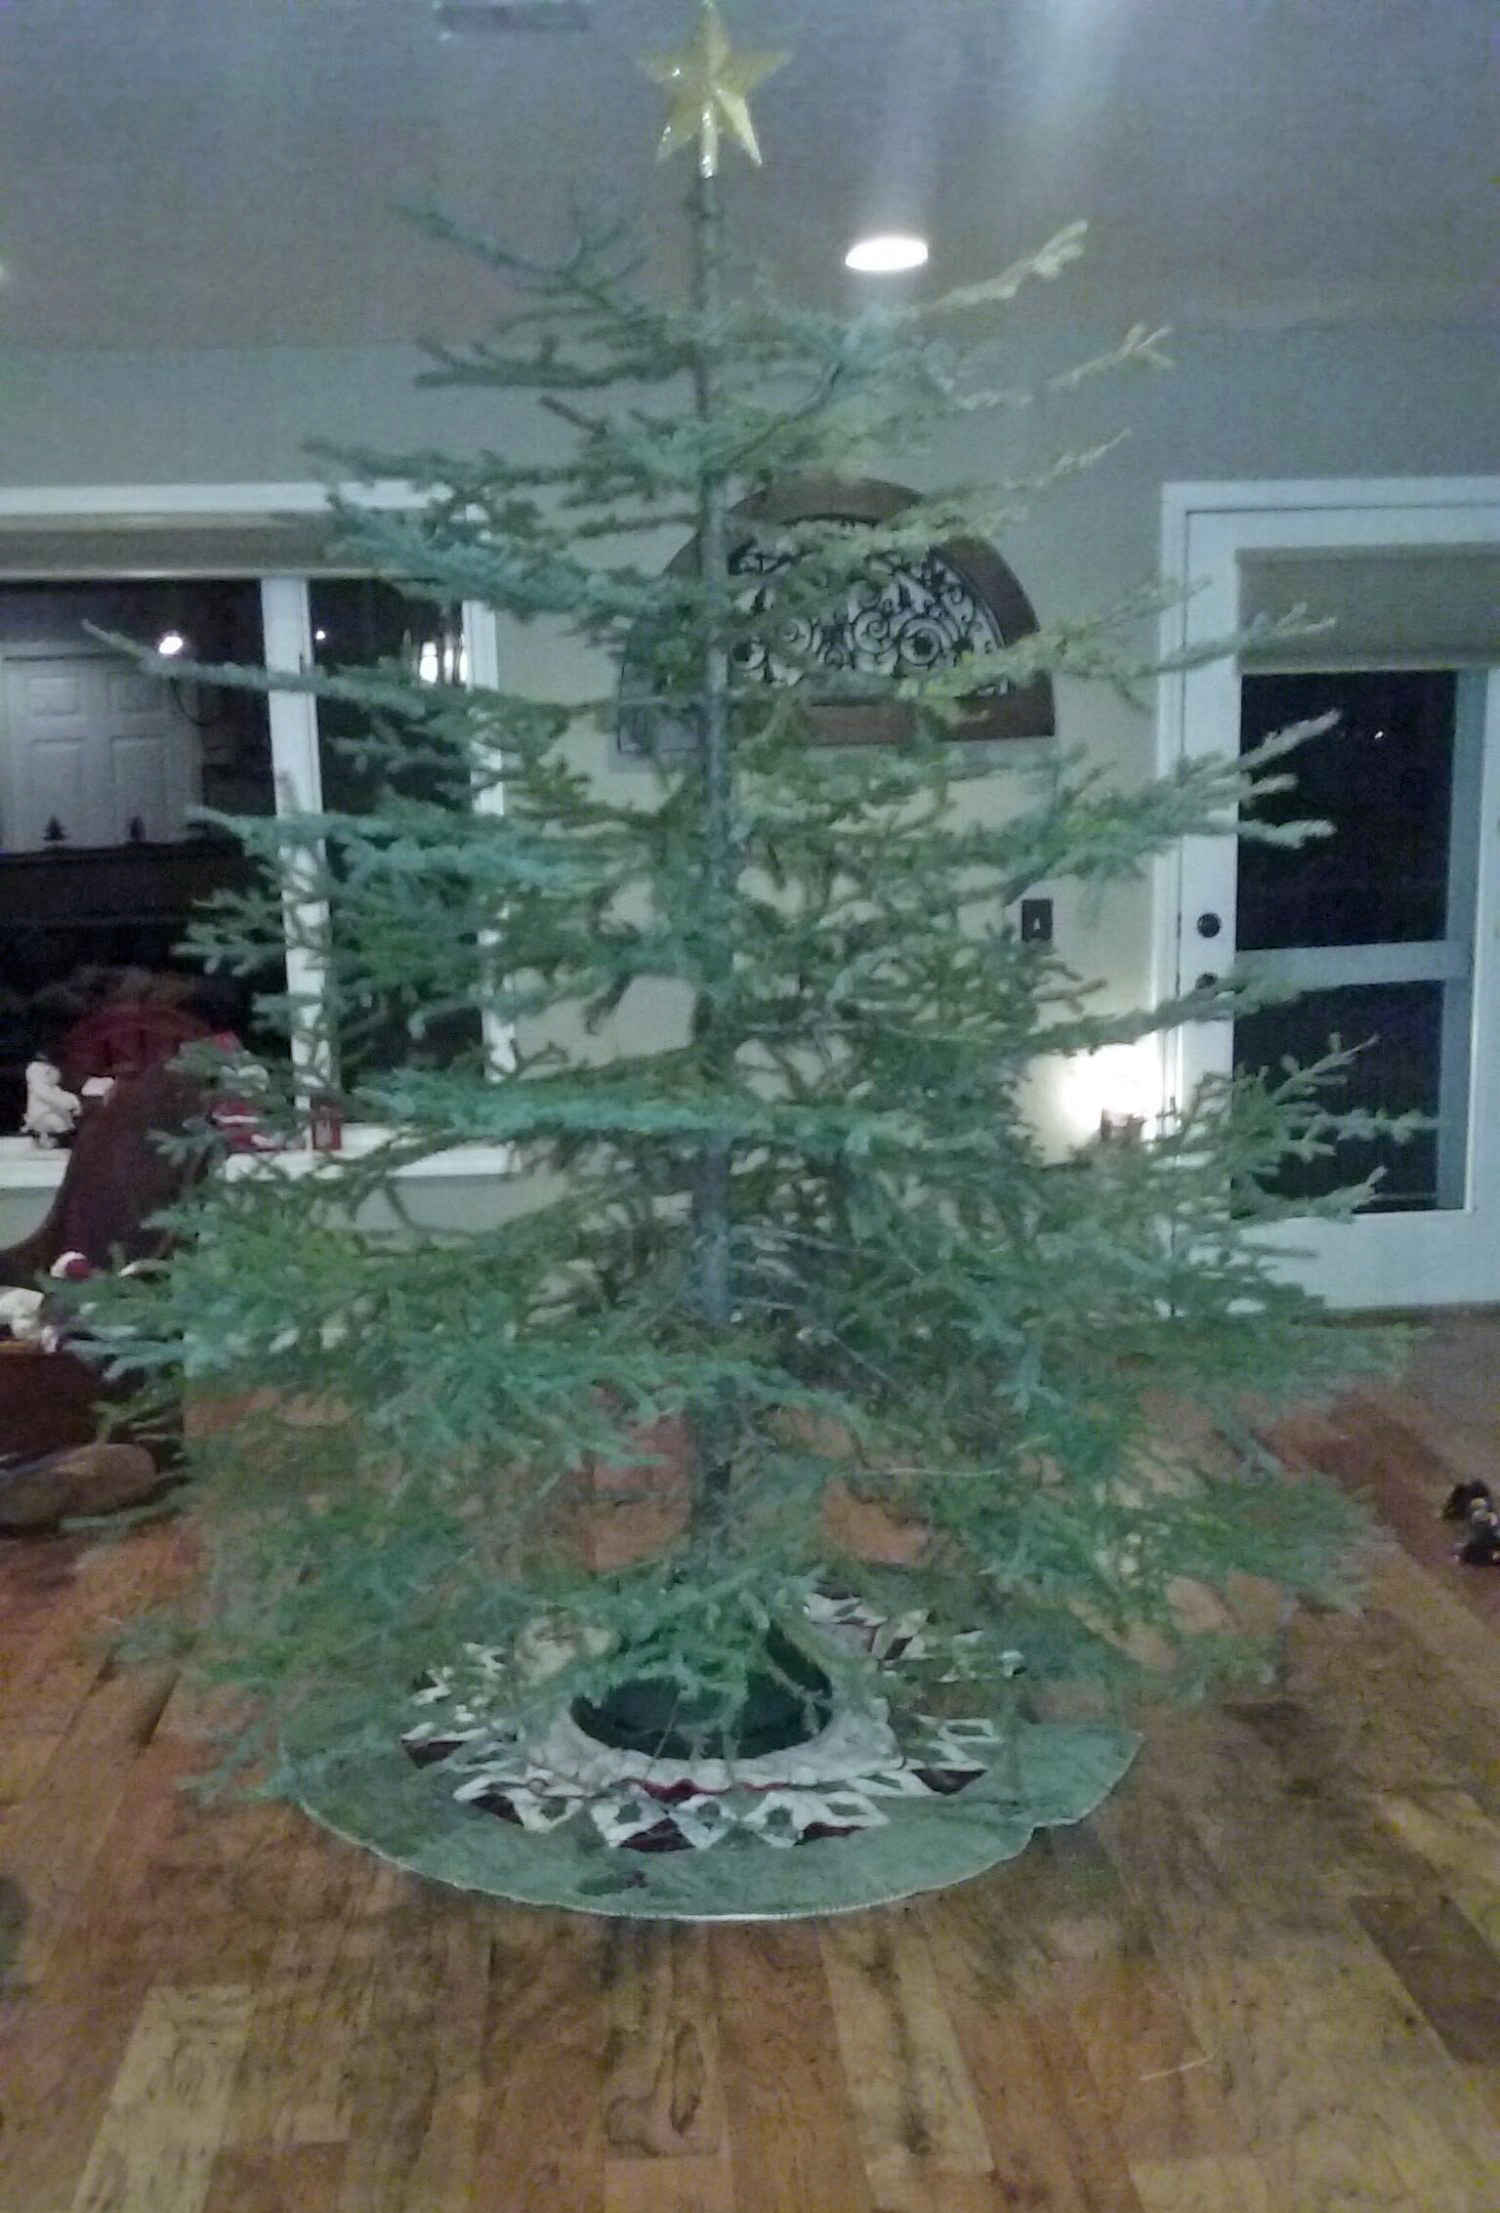 406dad - Cutting Your Own Christmas Tree